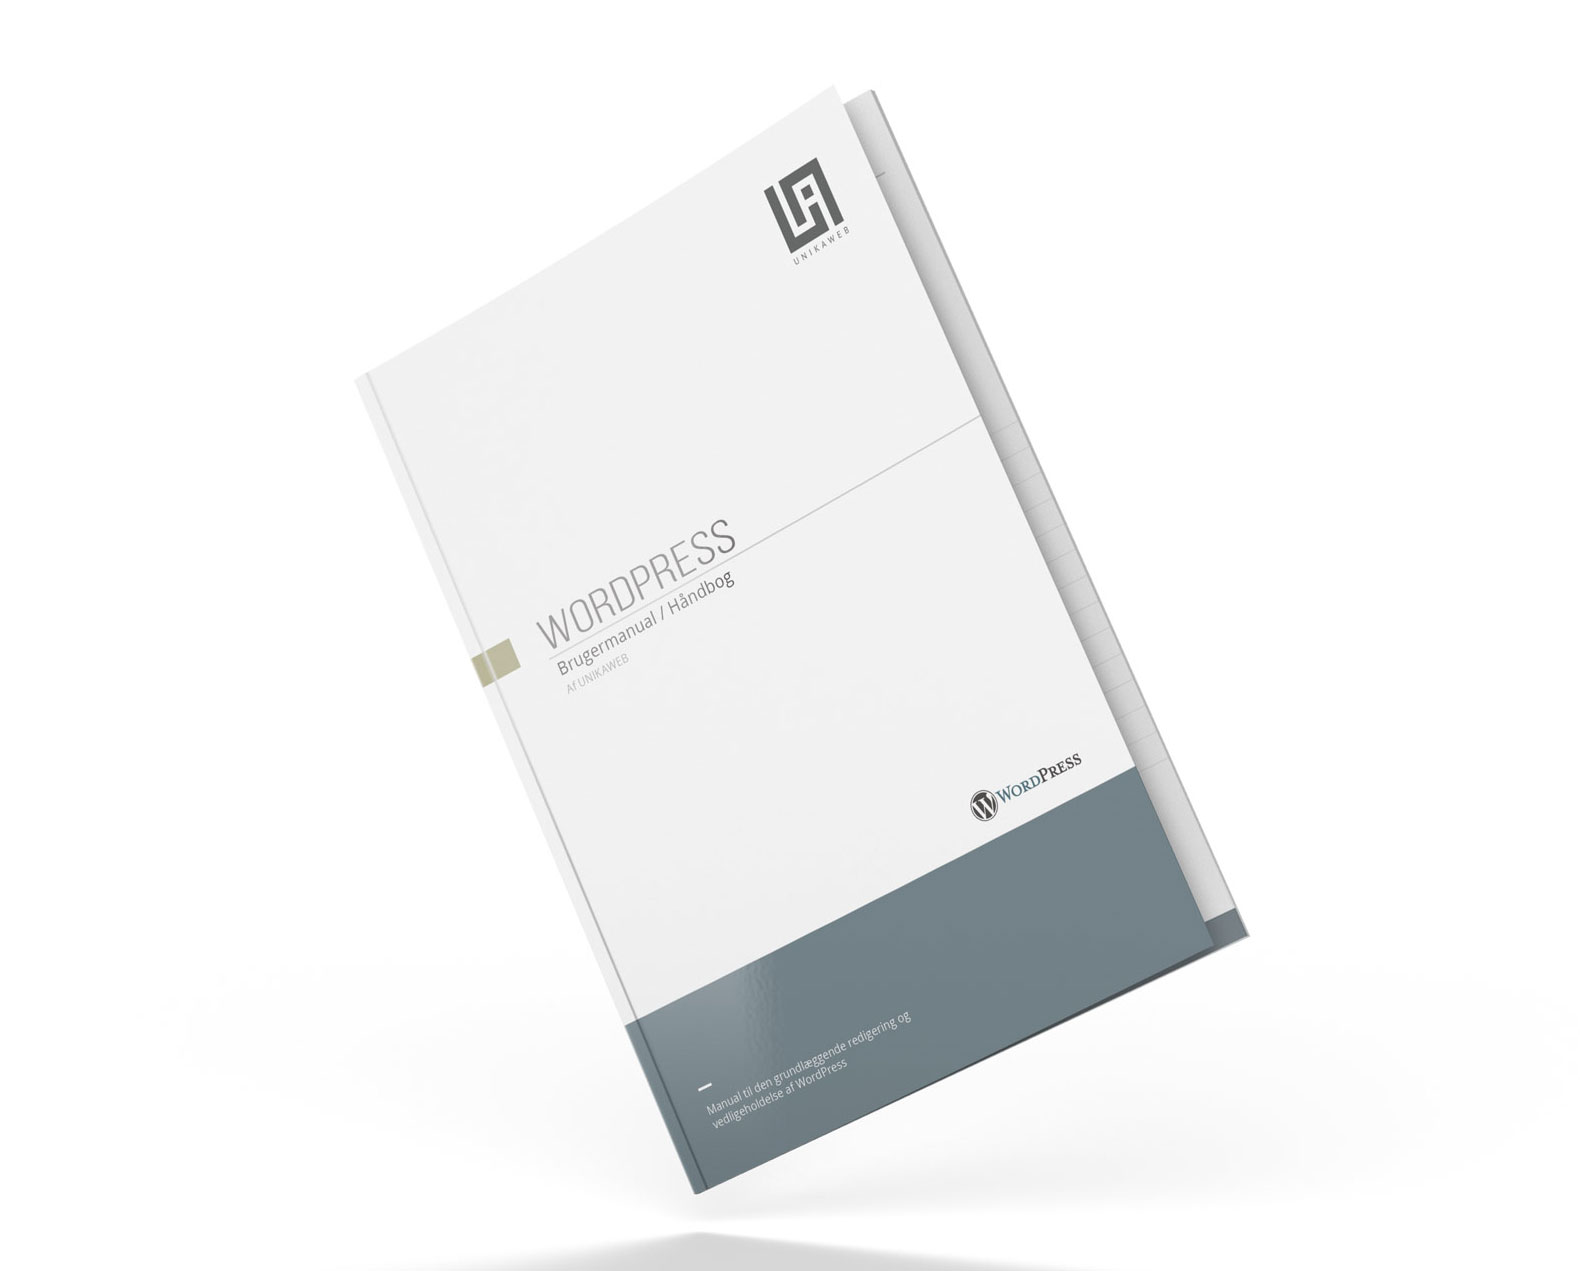 WordPress manual cover